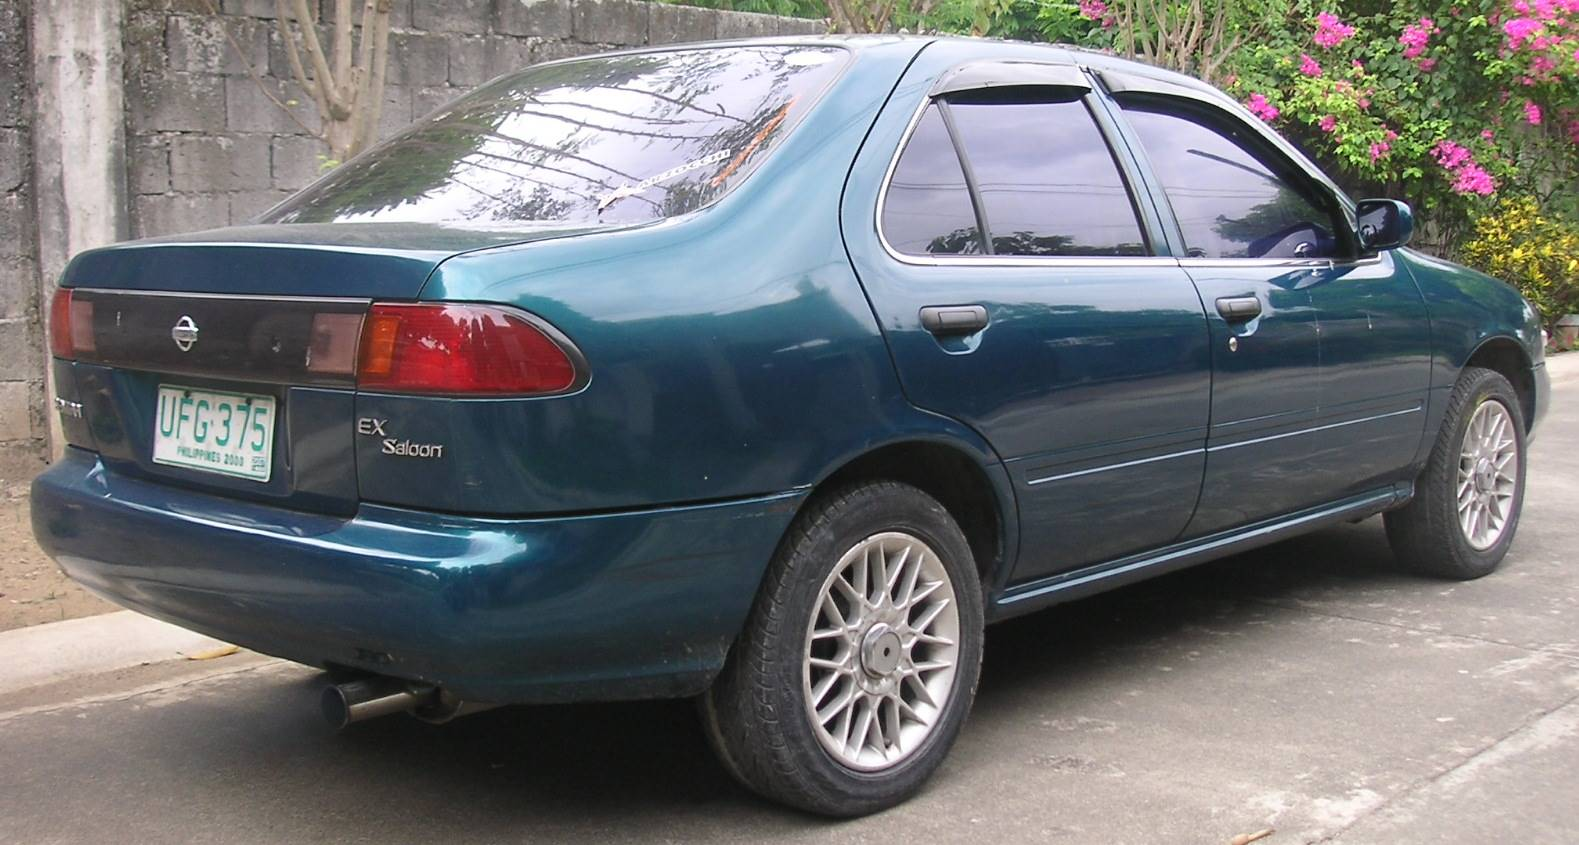 1996 Nissan Sentra GLE - Sedan 1.6L Manual